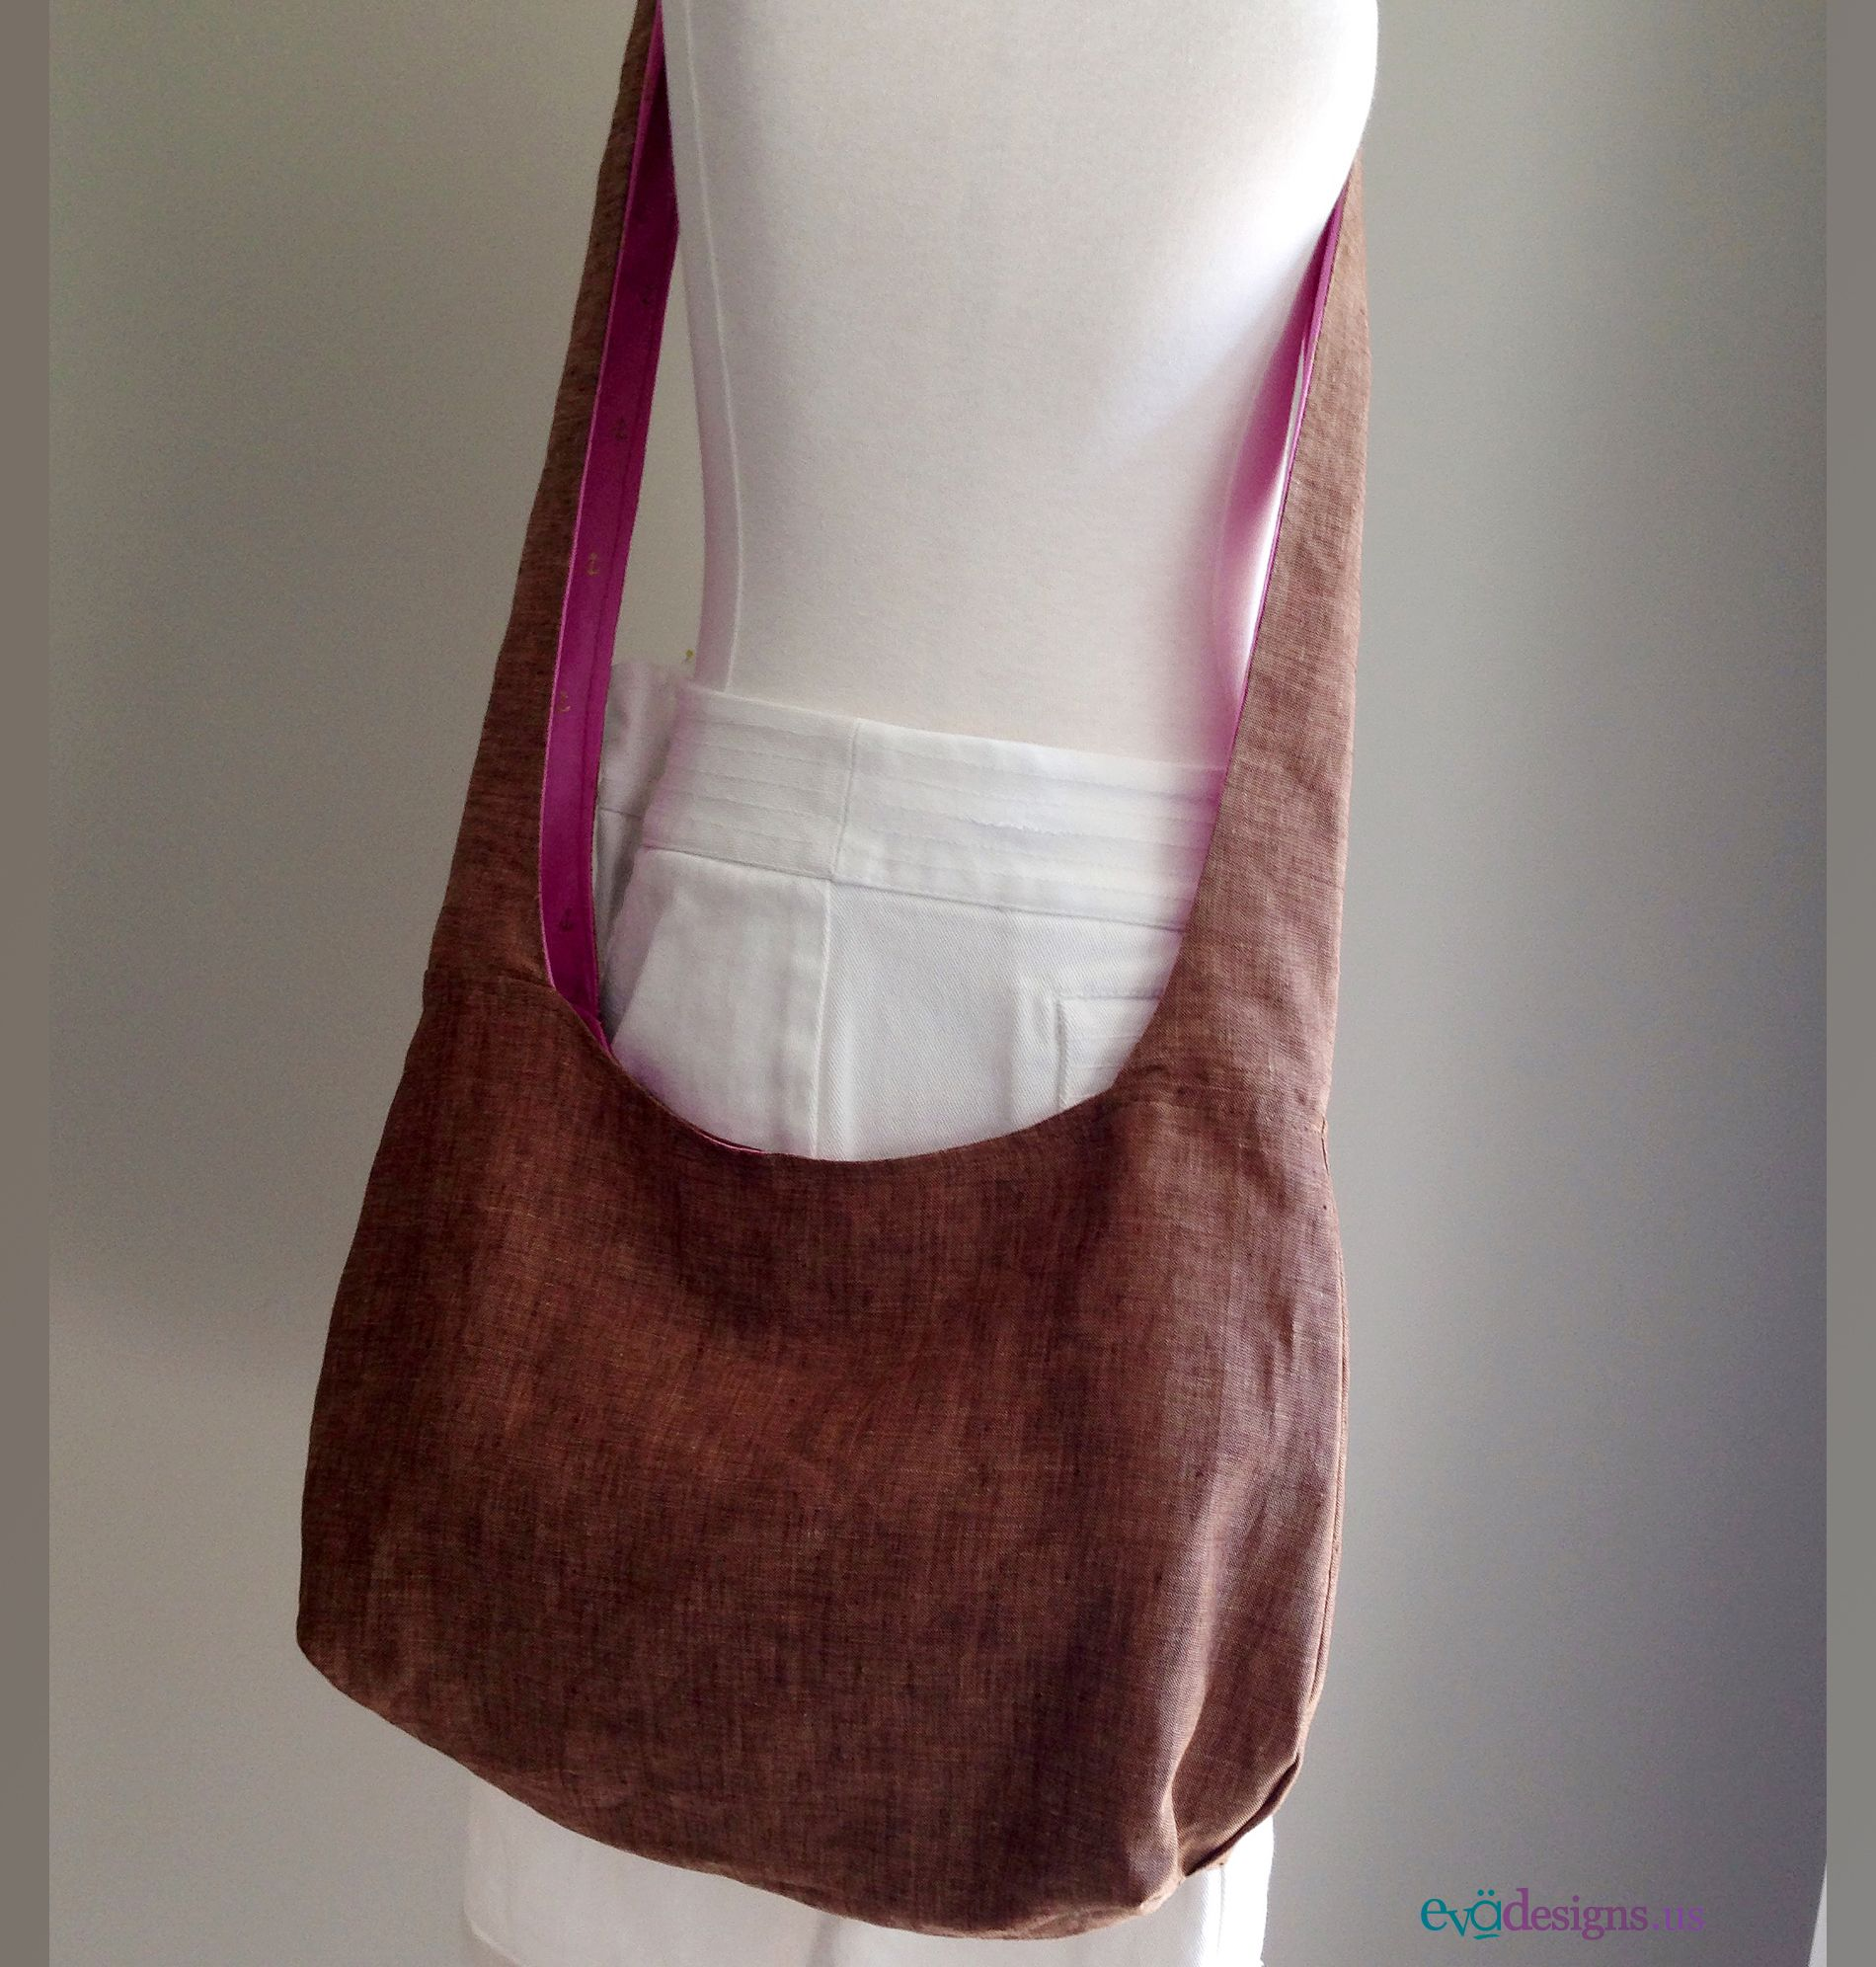 Packable sling neutral brown crossbody bag you can take anywhere. This bag is so easy to wear and accommodates a lot of stuff.  (Three pockets covering one full side on the inside and one pocket on…